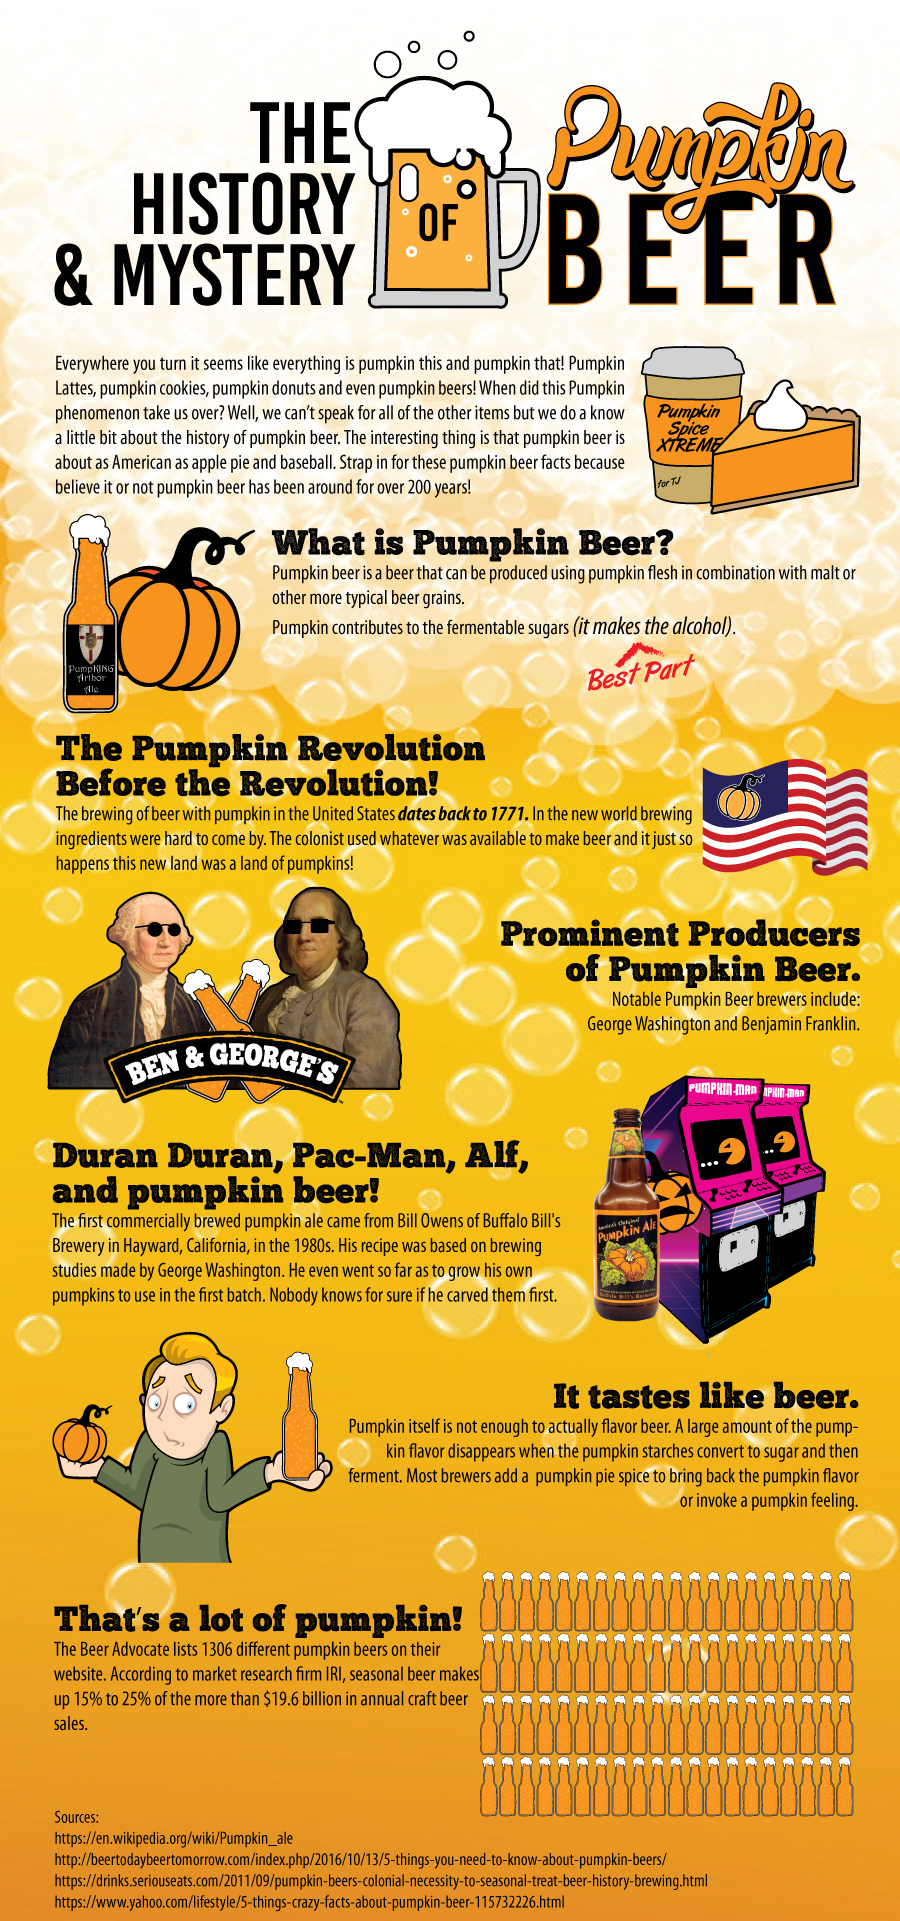 The History & Mystery Of Pumpkin Beer